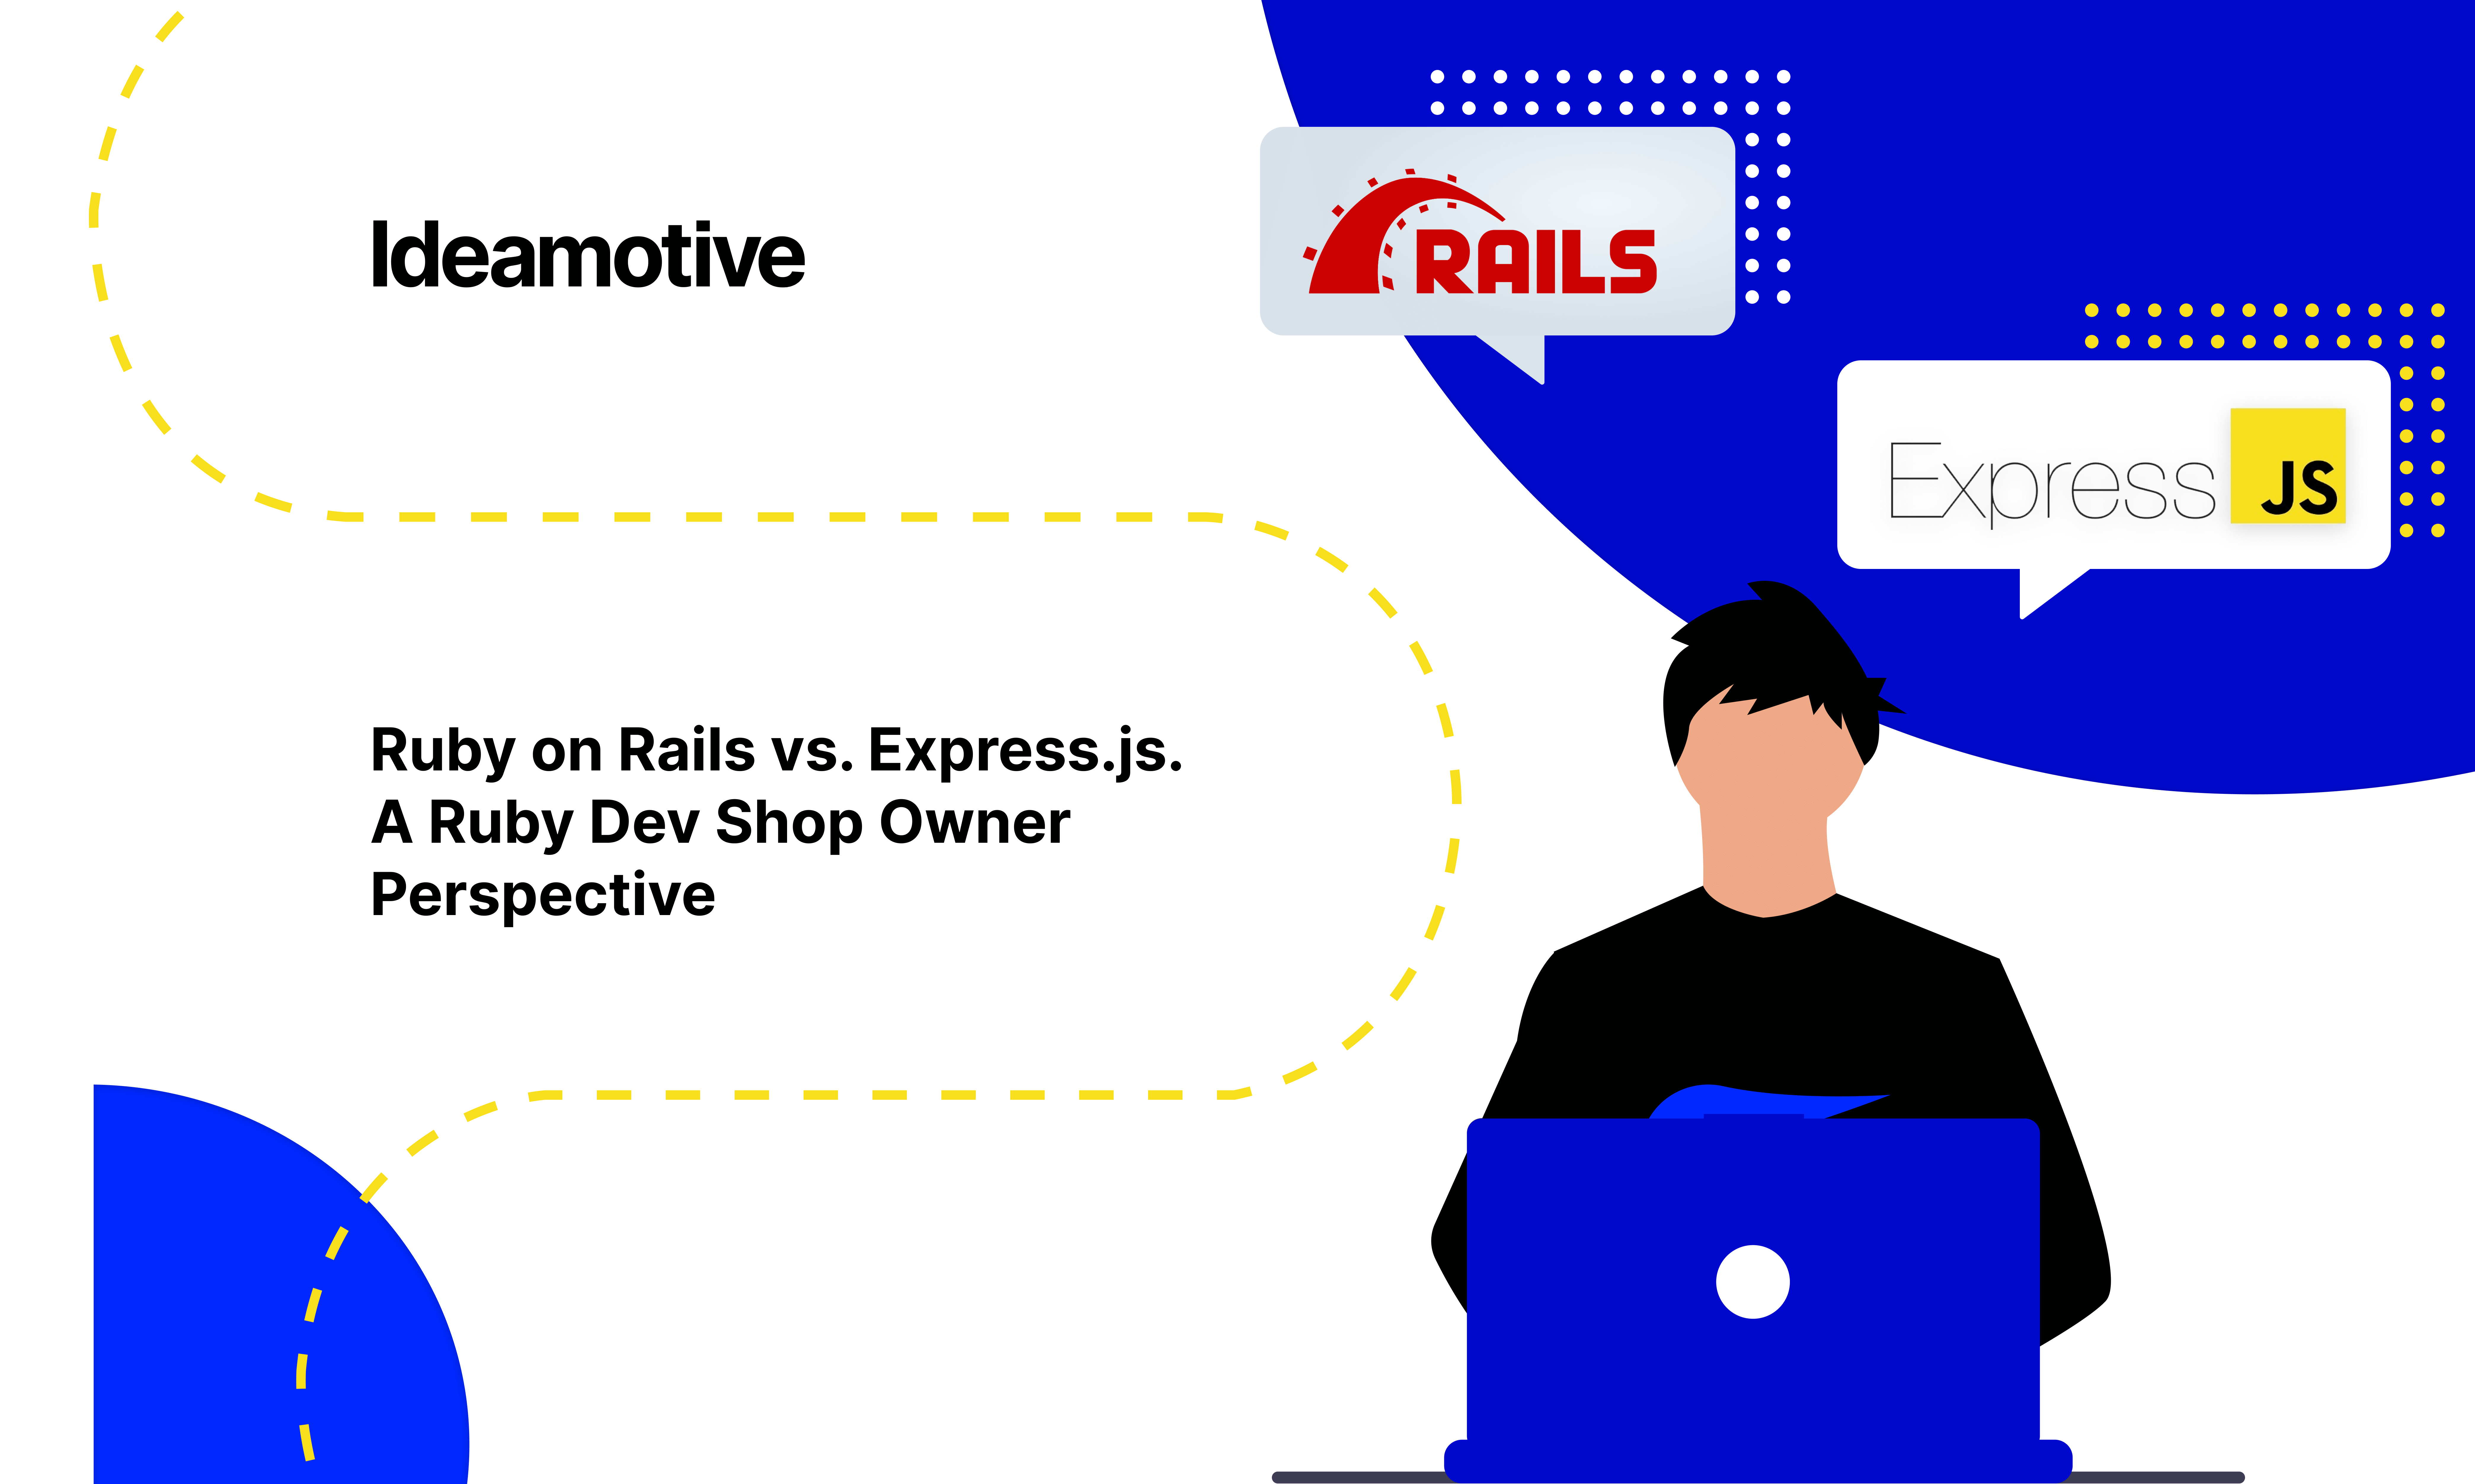 Ruby on Rails vs. Express.js. A Ruby Dev Shop Owner Perspective